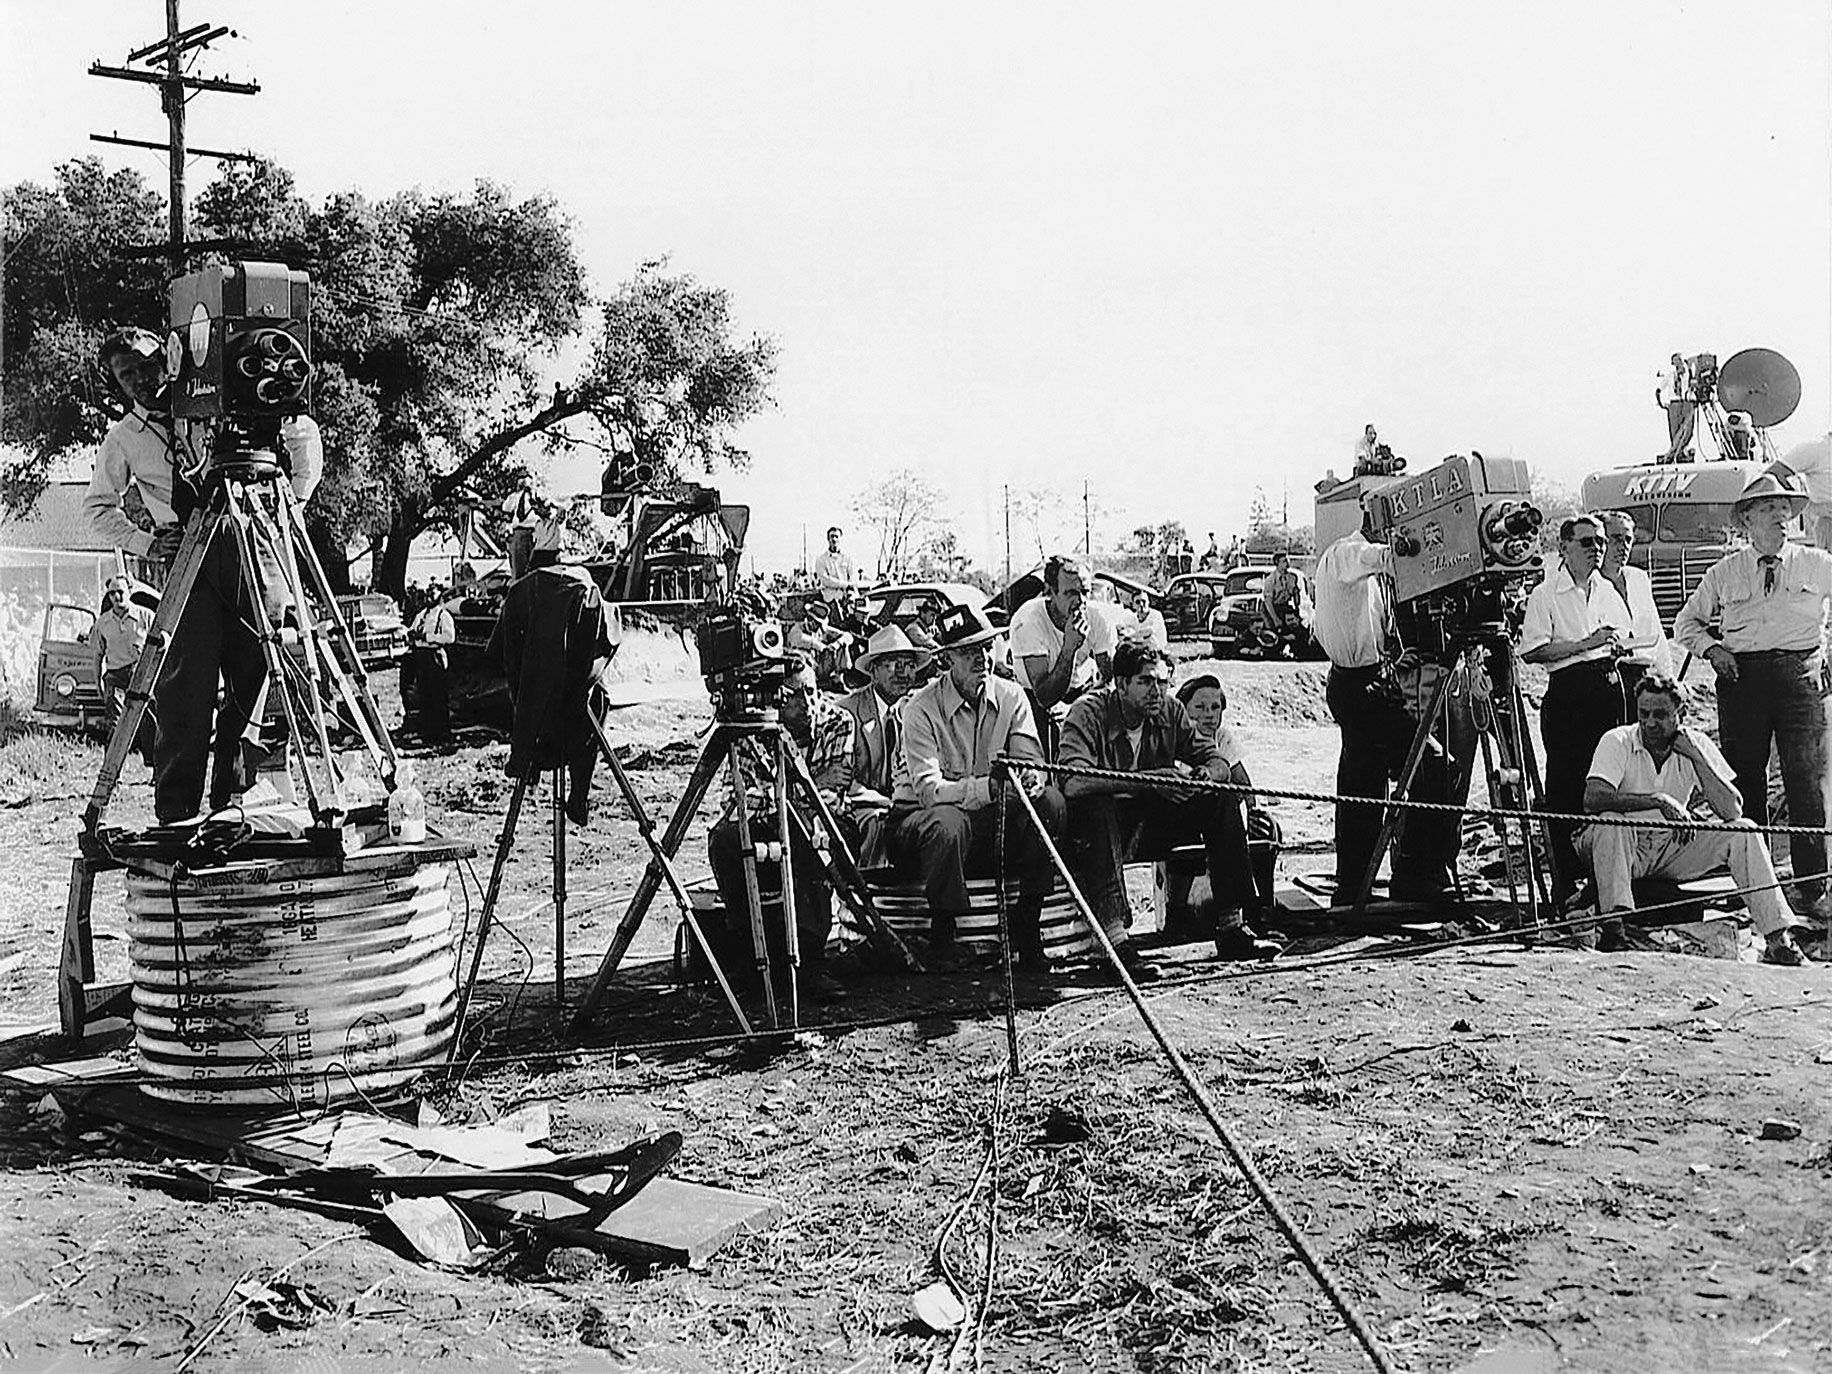 TV, radio, newsreel and print reporters gathered at the site of the rescue attempt. The search for the girl down the well was the first major live televised news event.